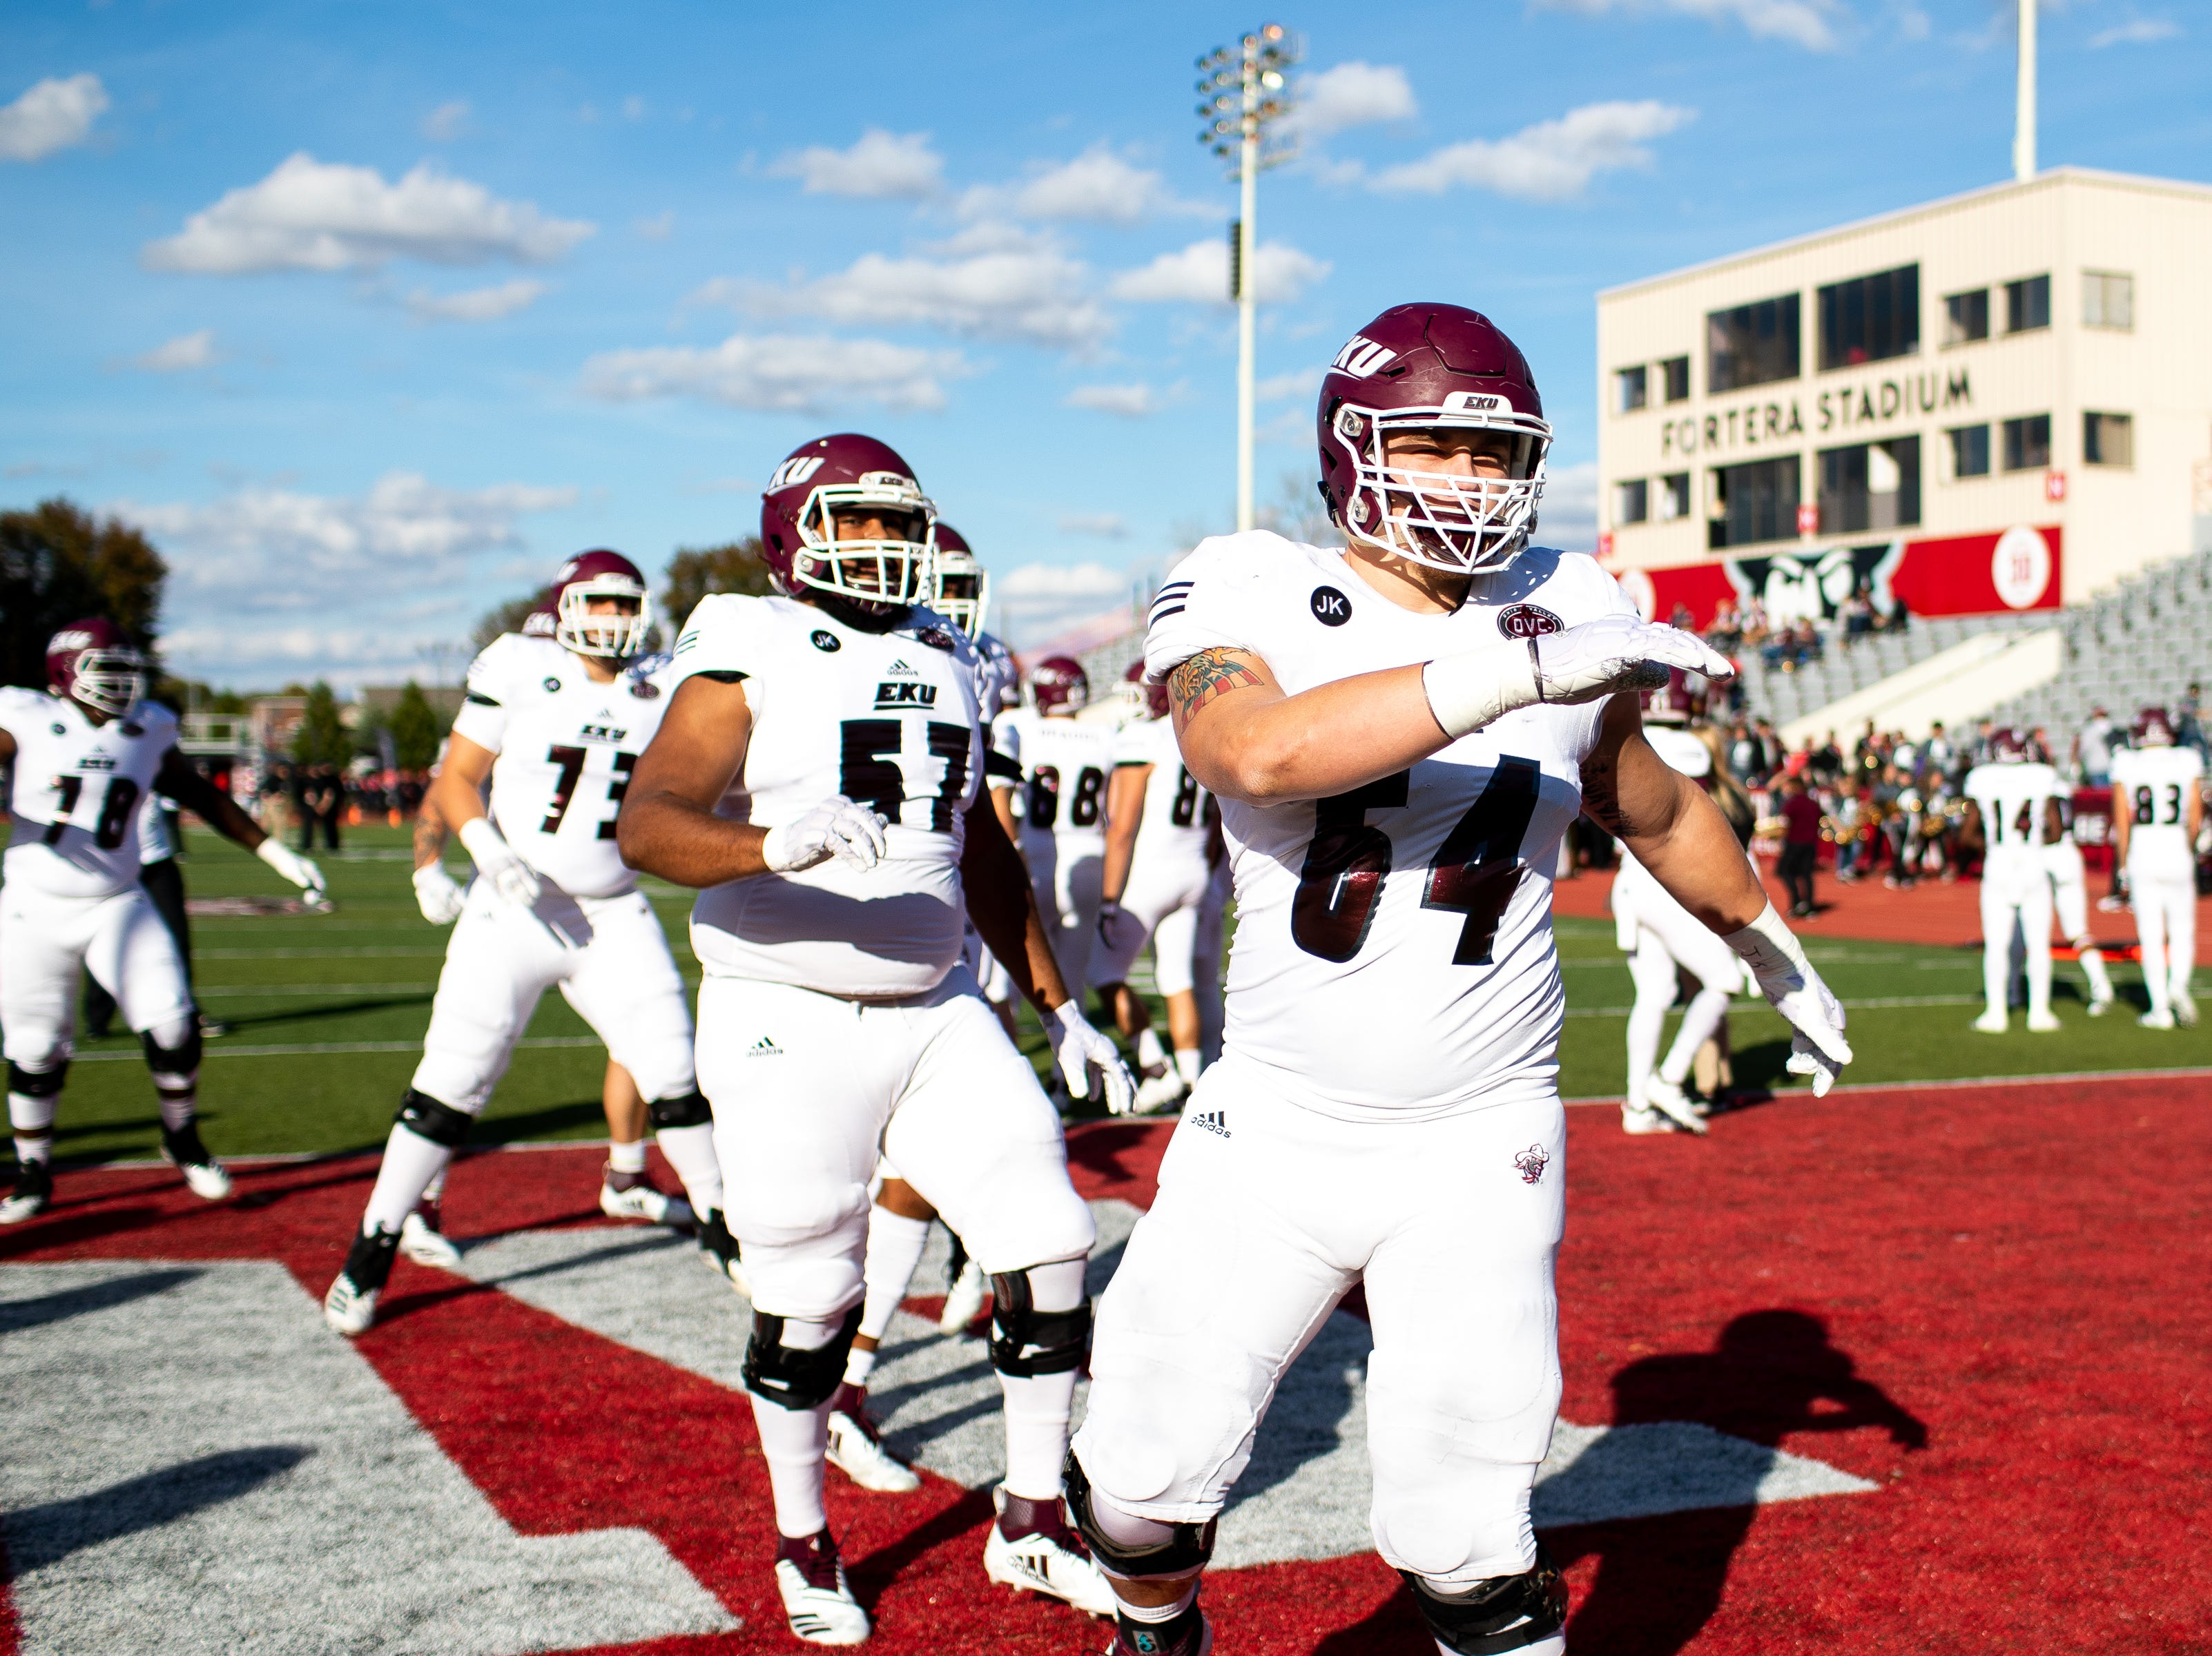 Eastern Kentucky Colonels warm up before the game at Fortera Stadium Saturday, Nov. 3, 2018, in Clarksville, Tenn.